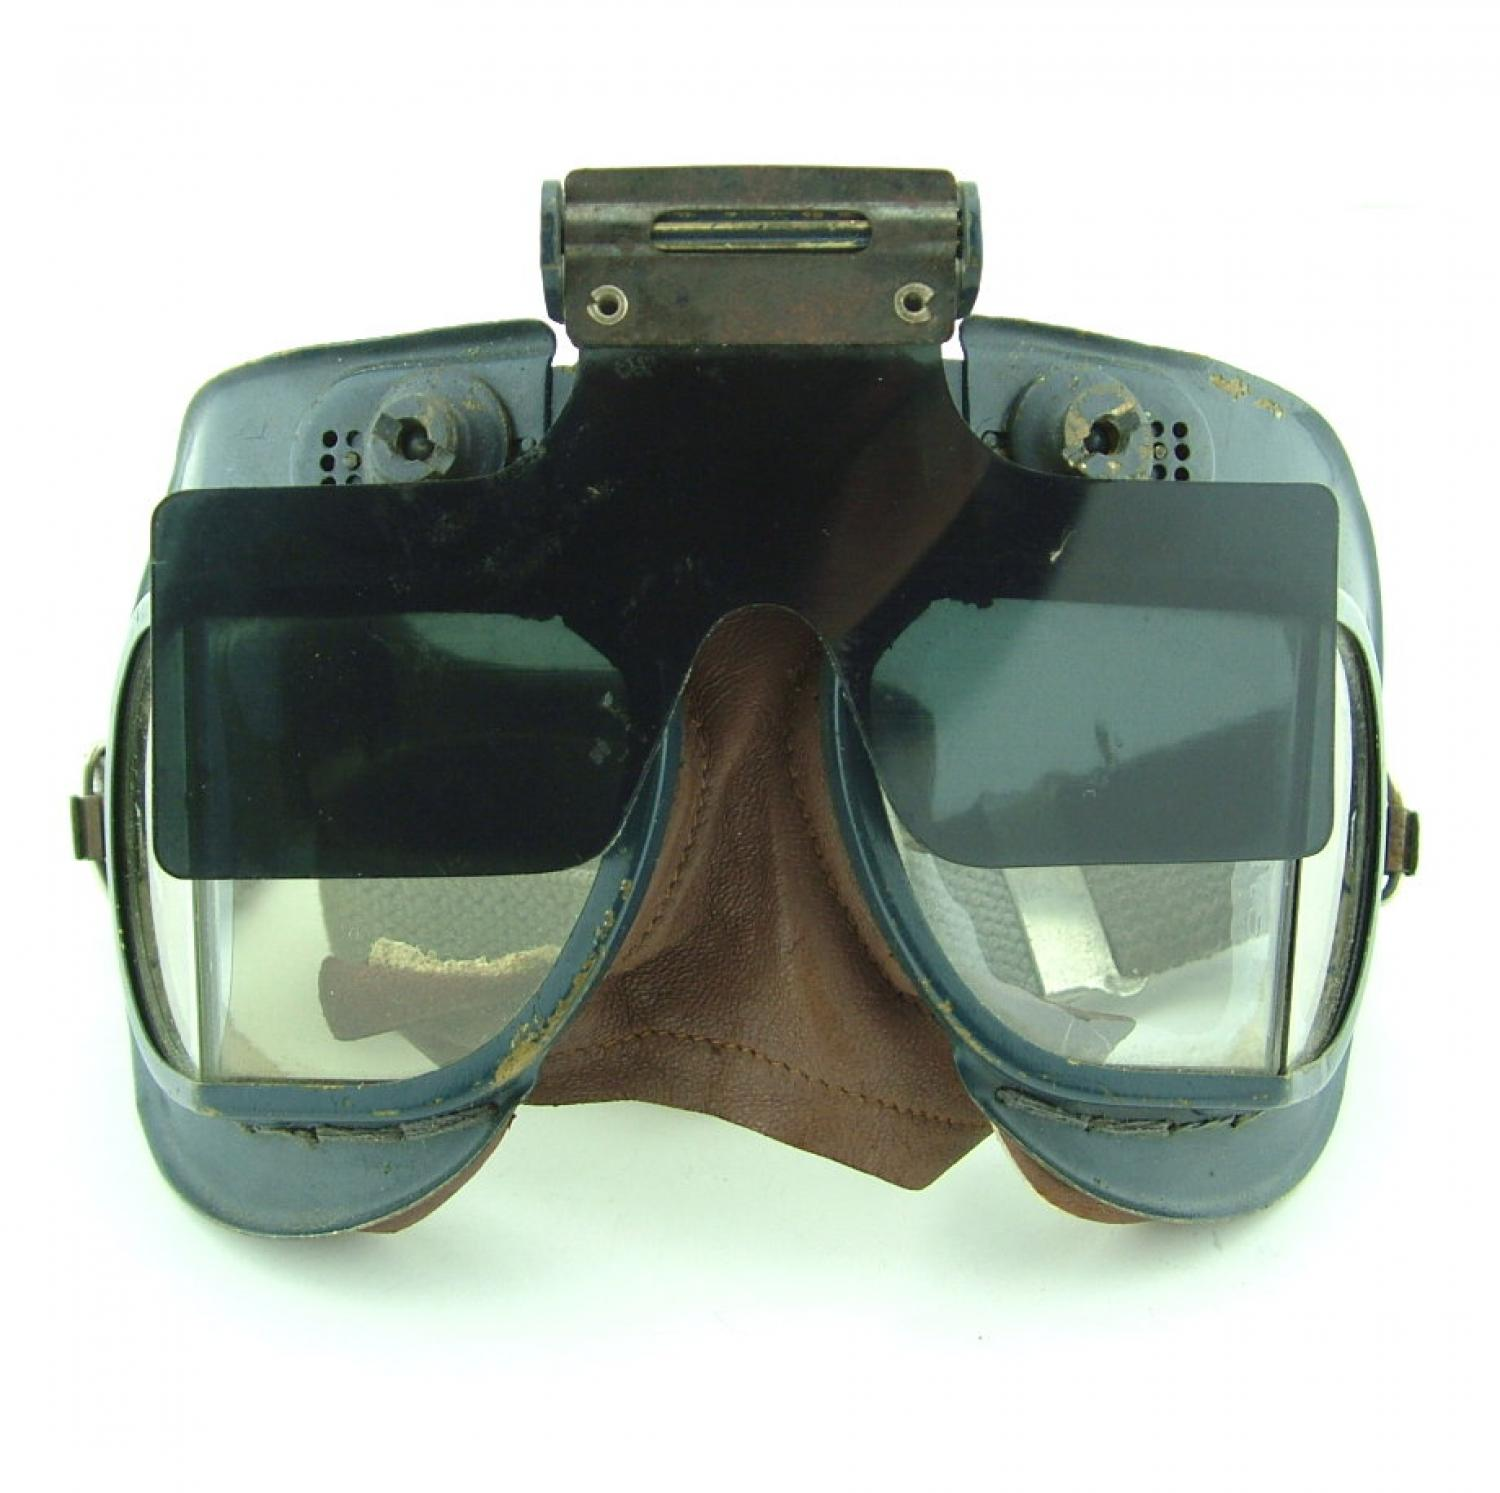 RAF MKVII flying goggles & anti-glare shield